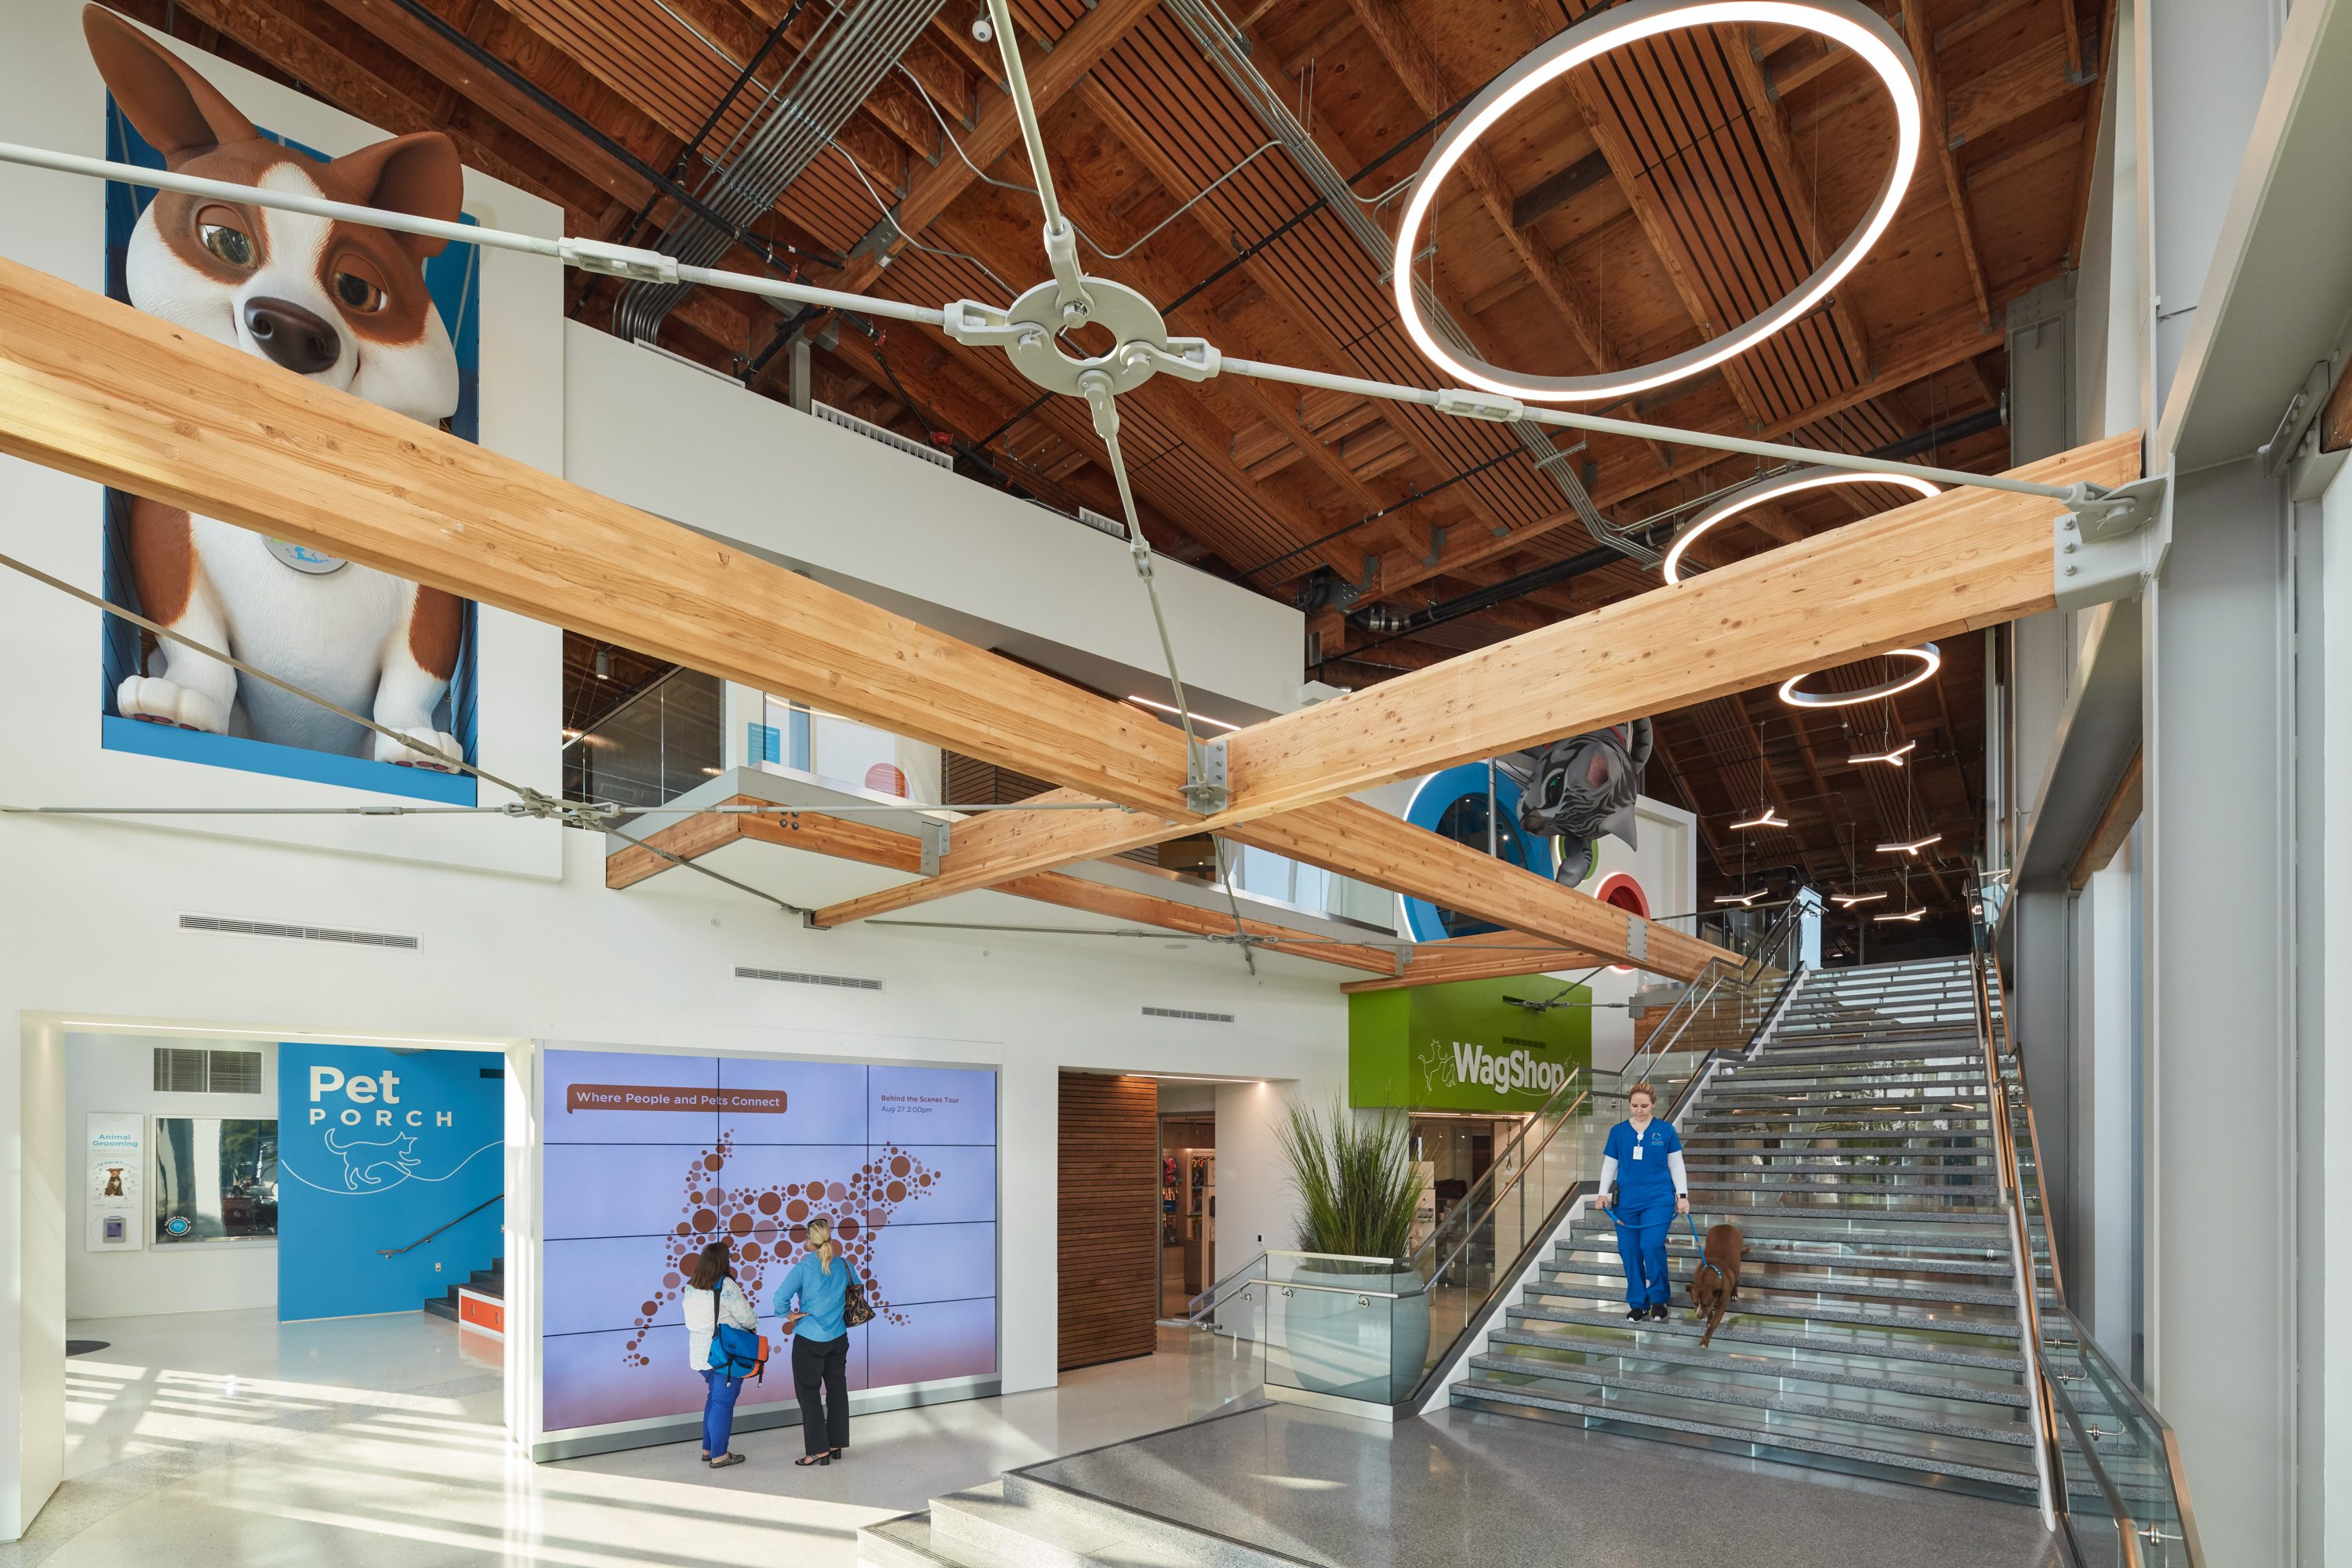 MATT construction Annenberg Playa Vista PetSpace Interior entrance lobby